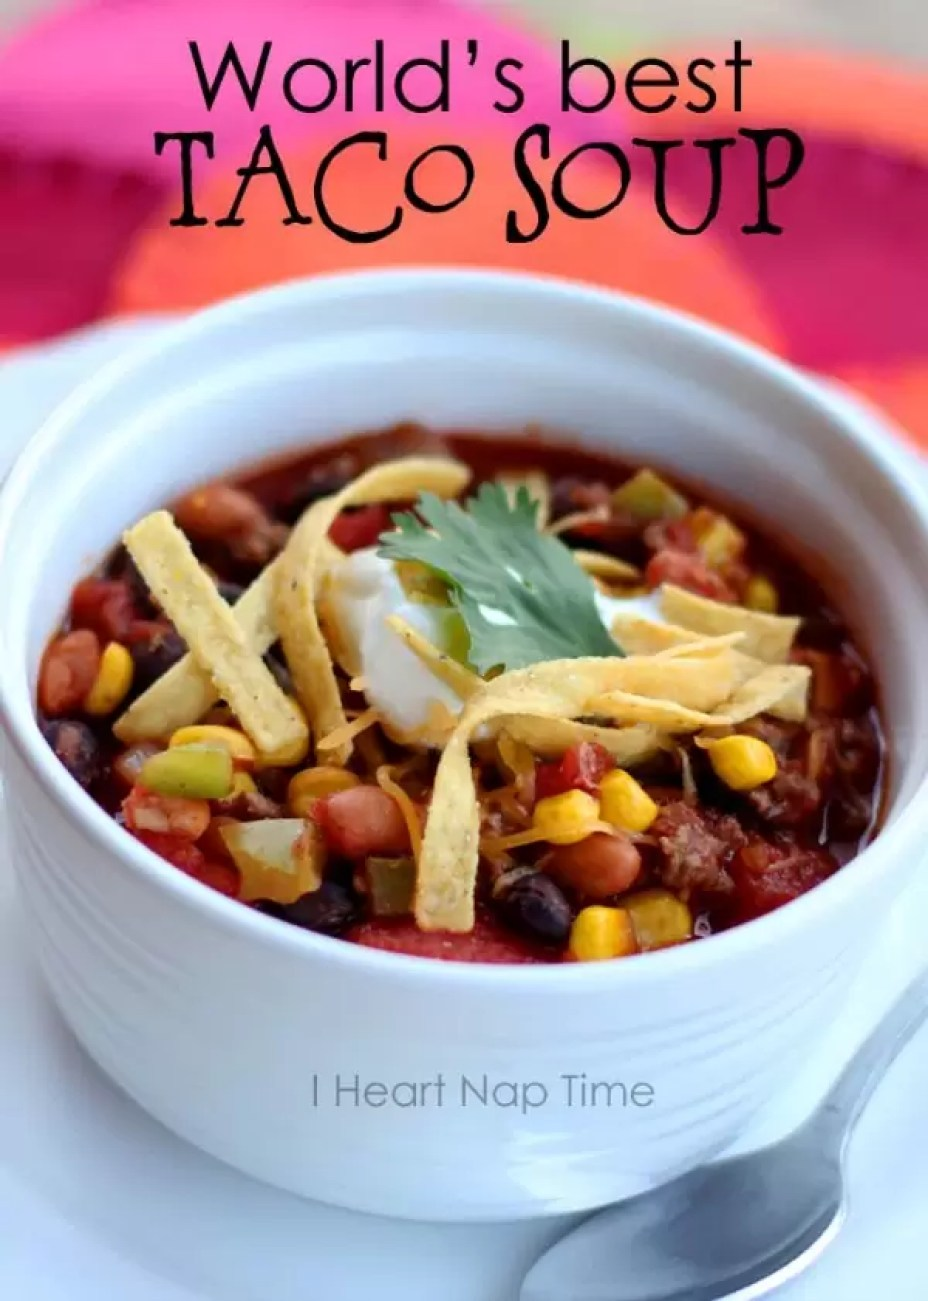 Taco Soup  by I Heart Nap Time